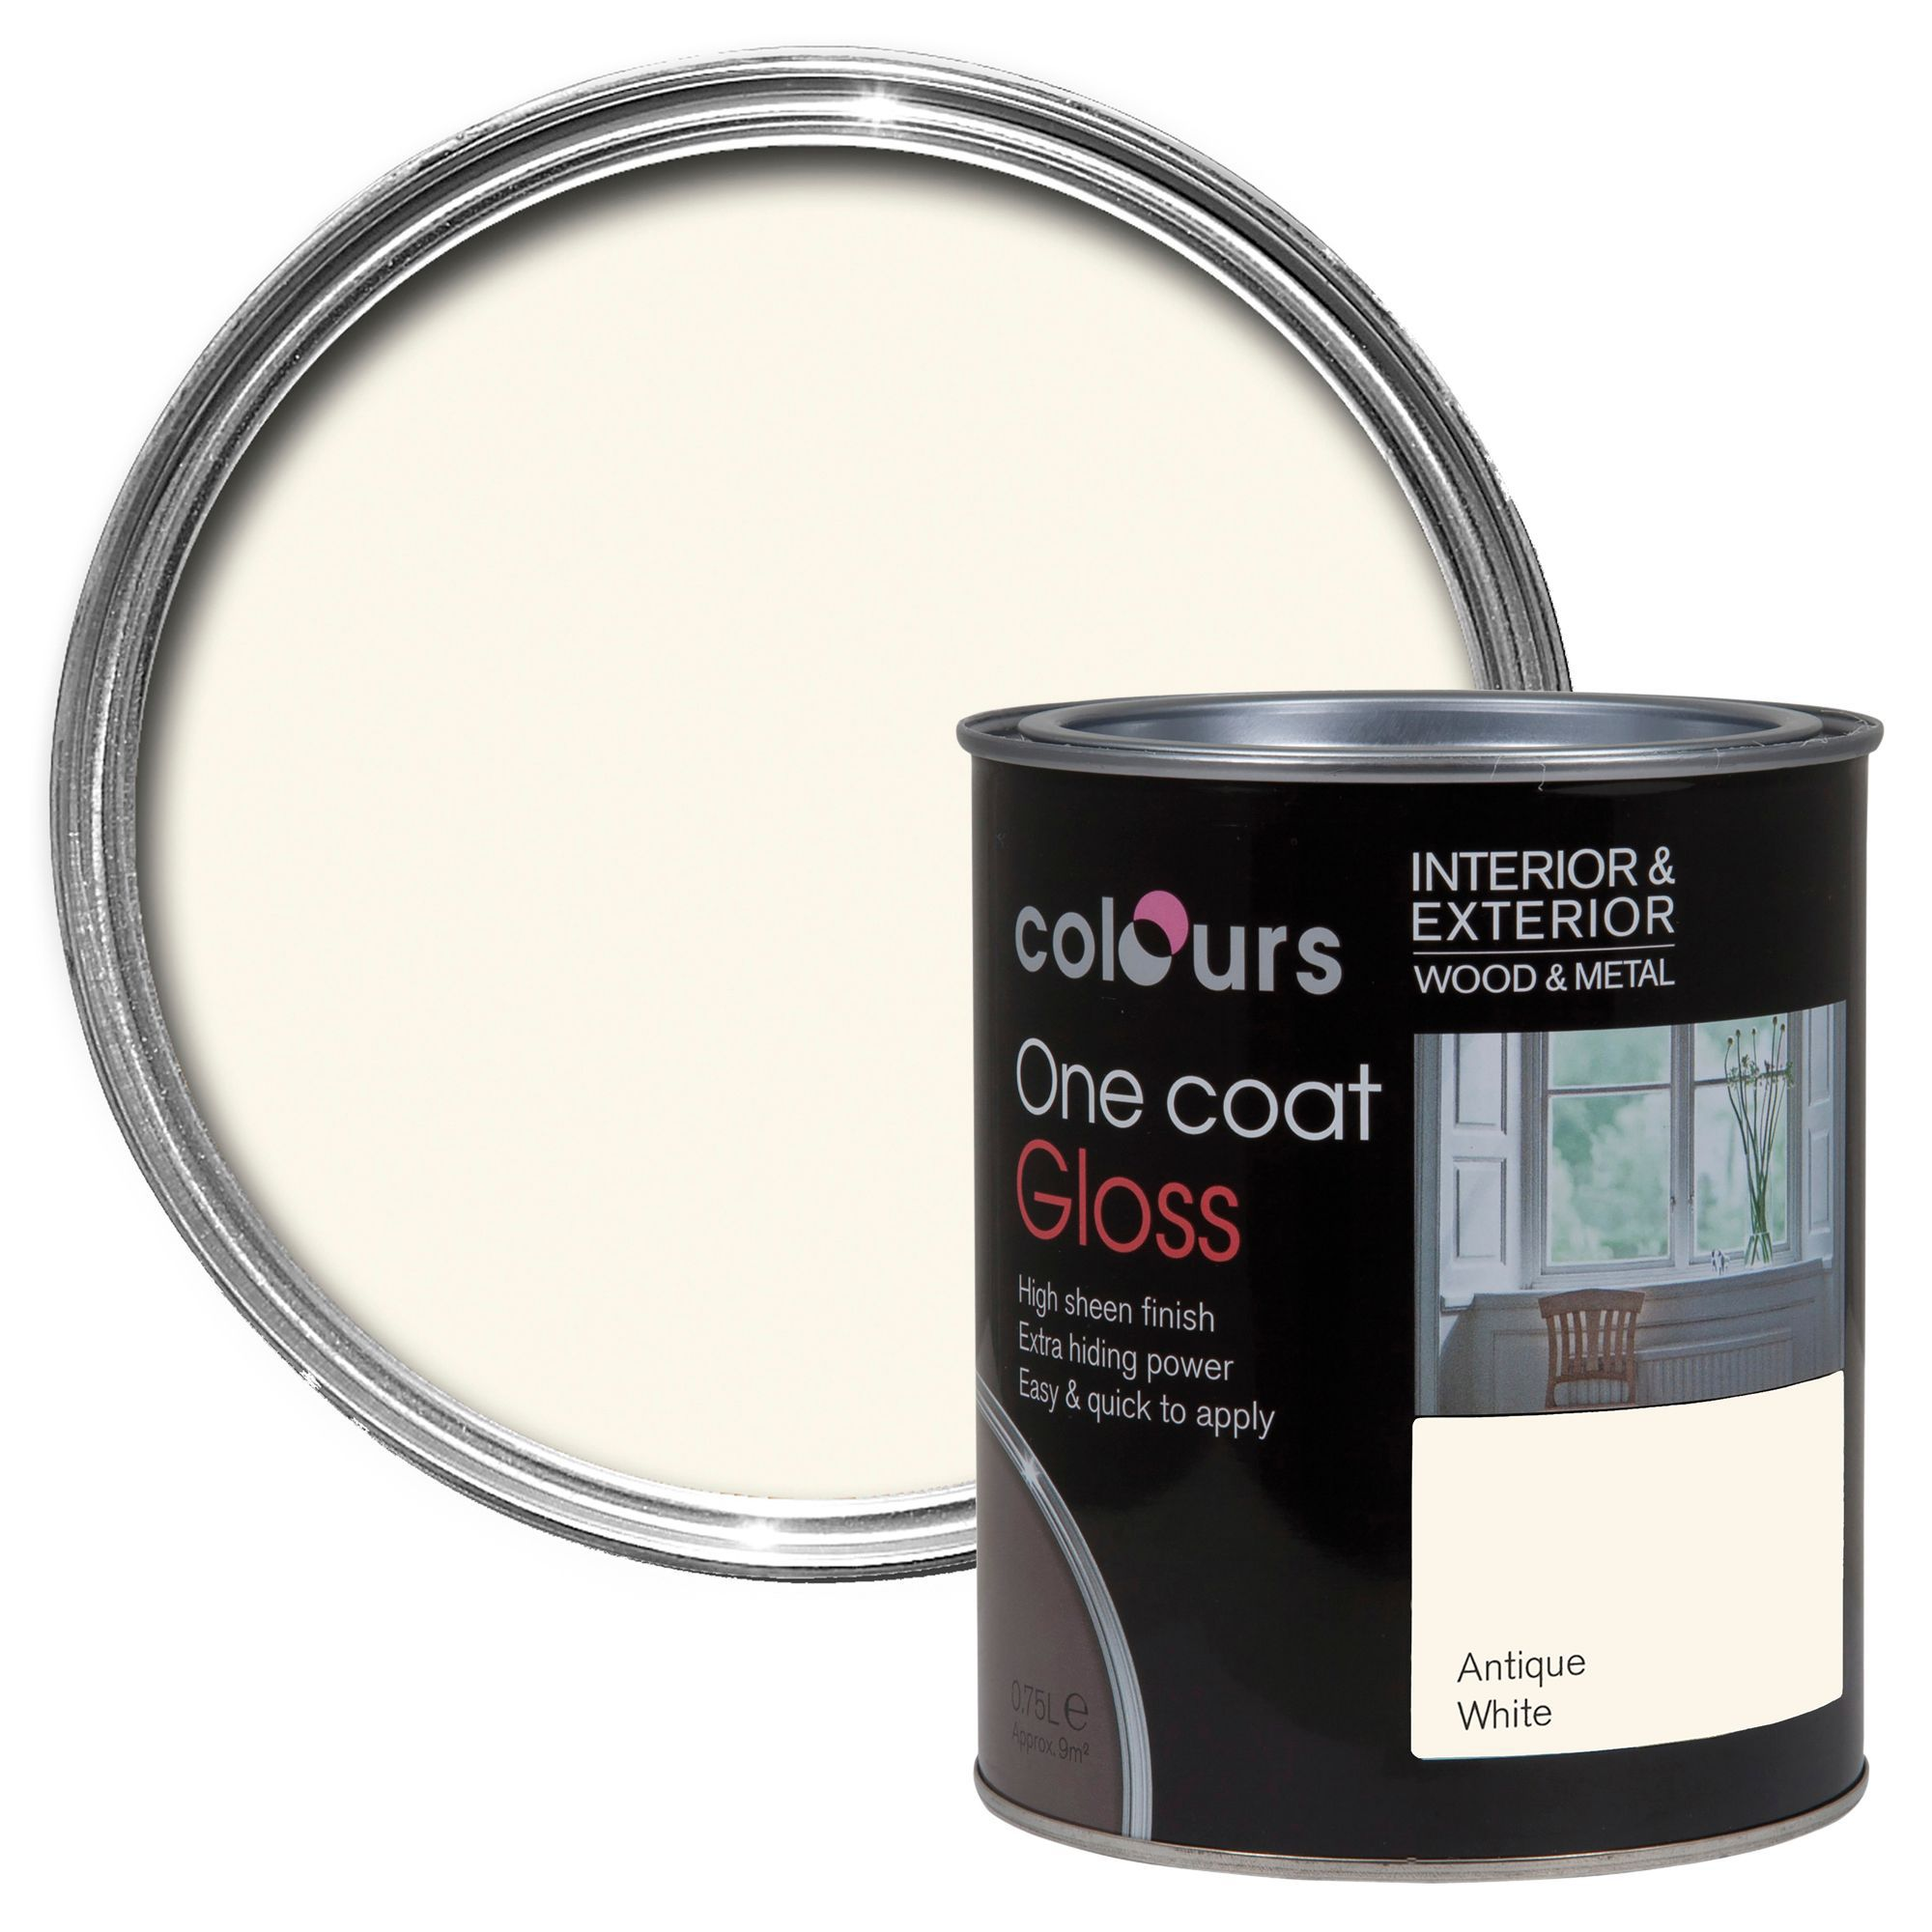 Colours One Coat Interior Antique White Gloss Wood & Metal Paint 750ml